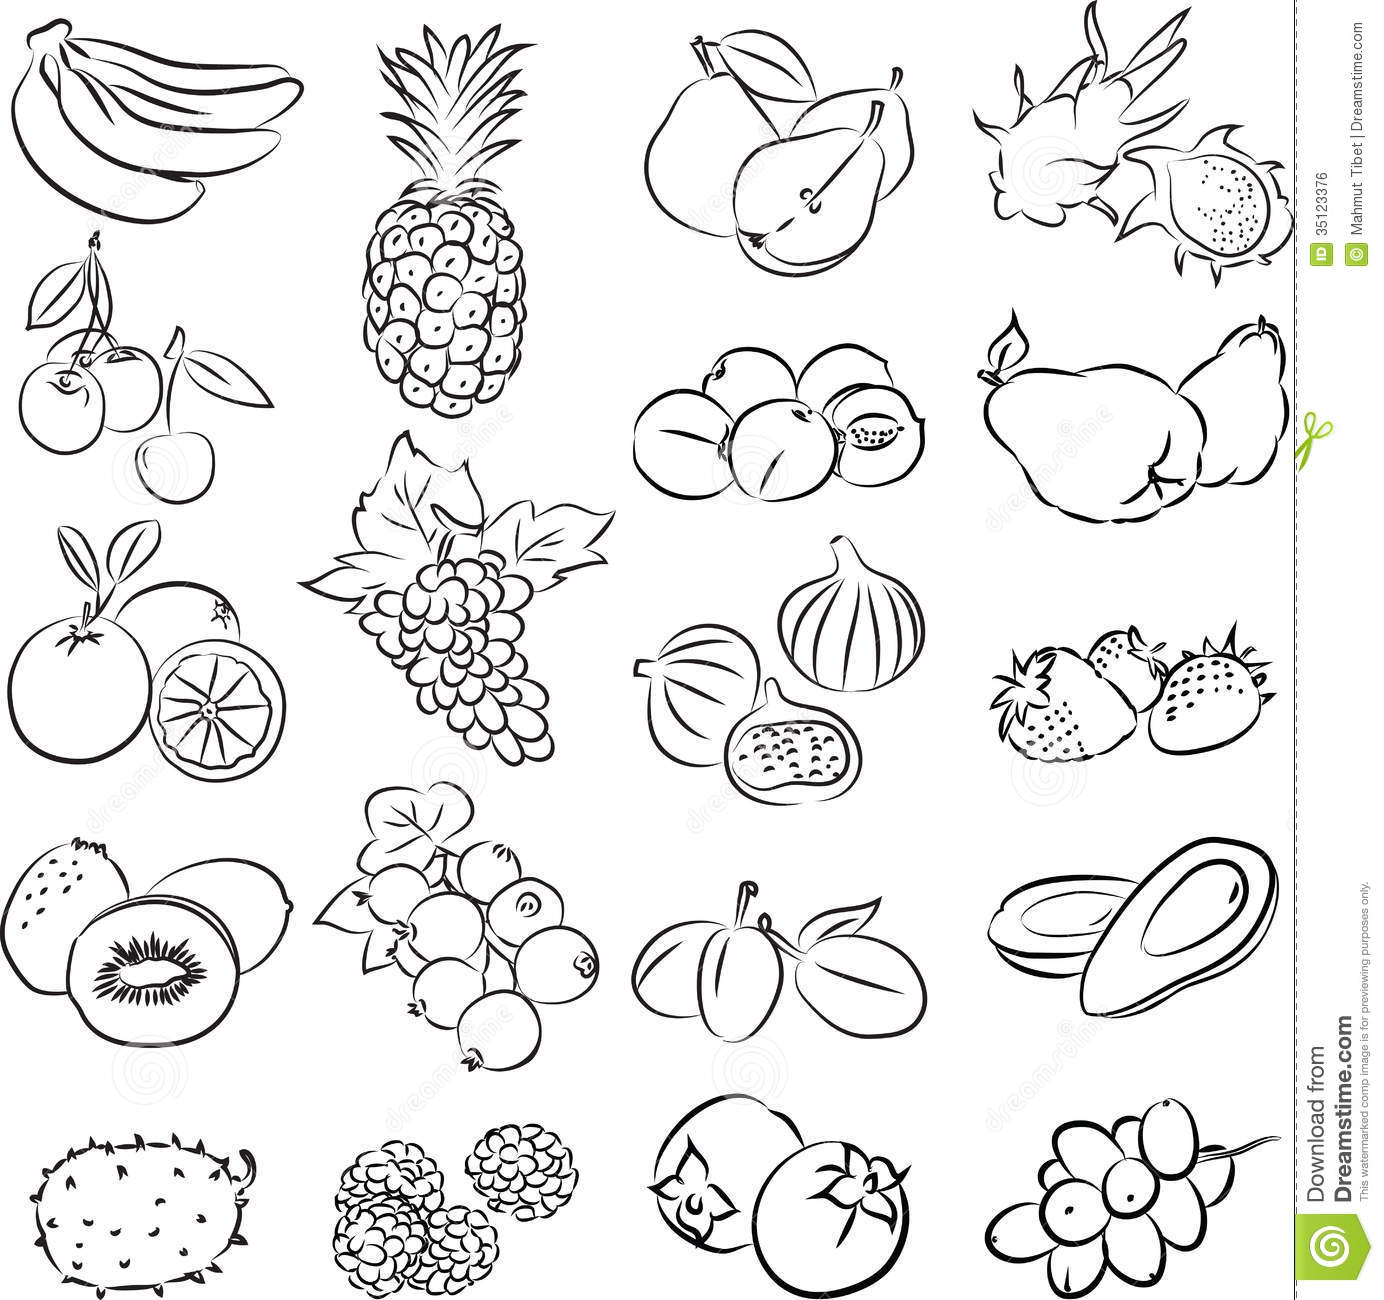 Line Art Vegetables : Fruits royalty free stock image